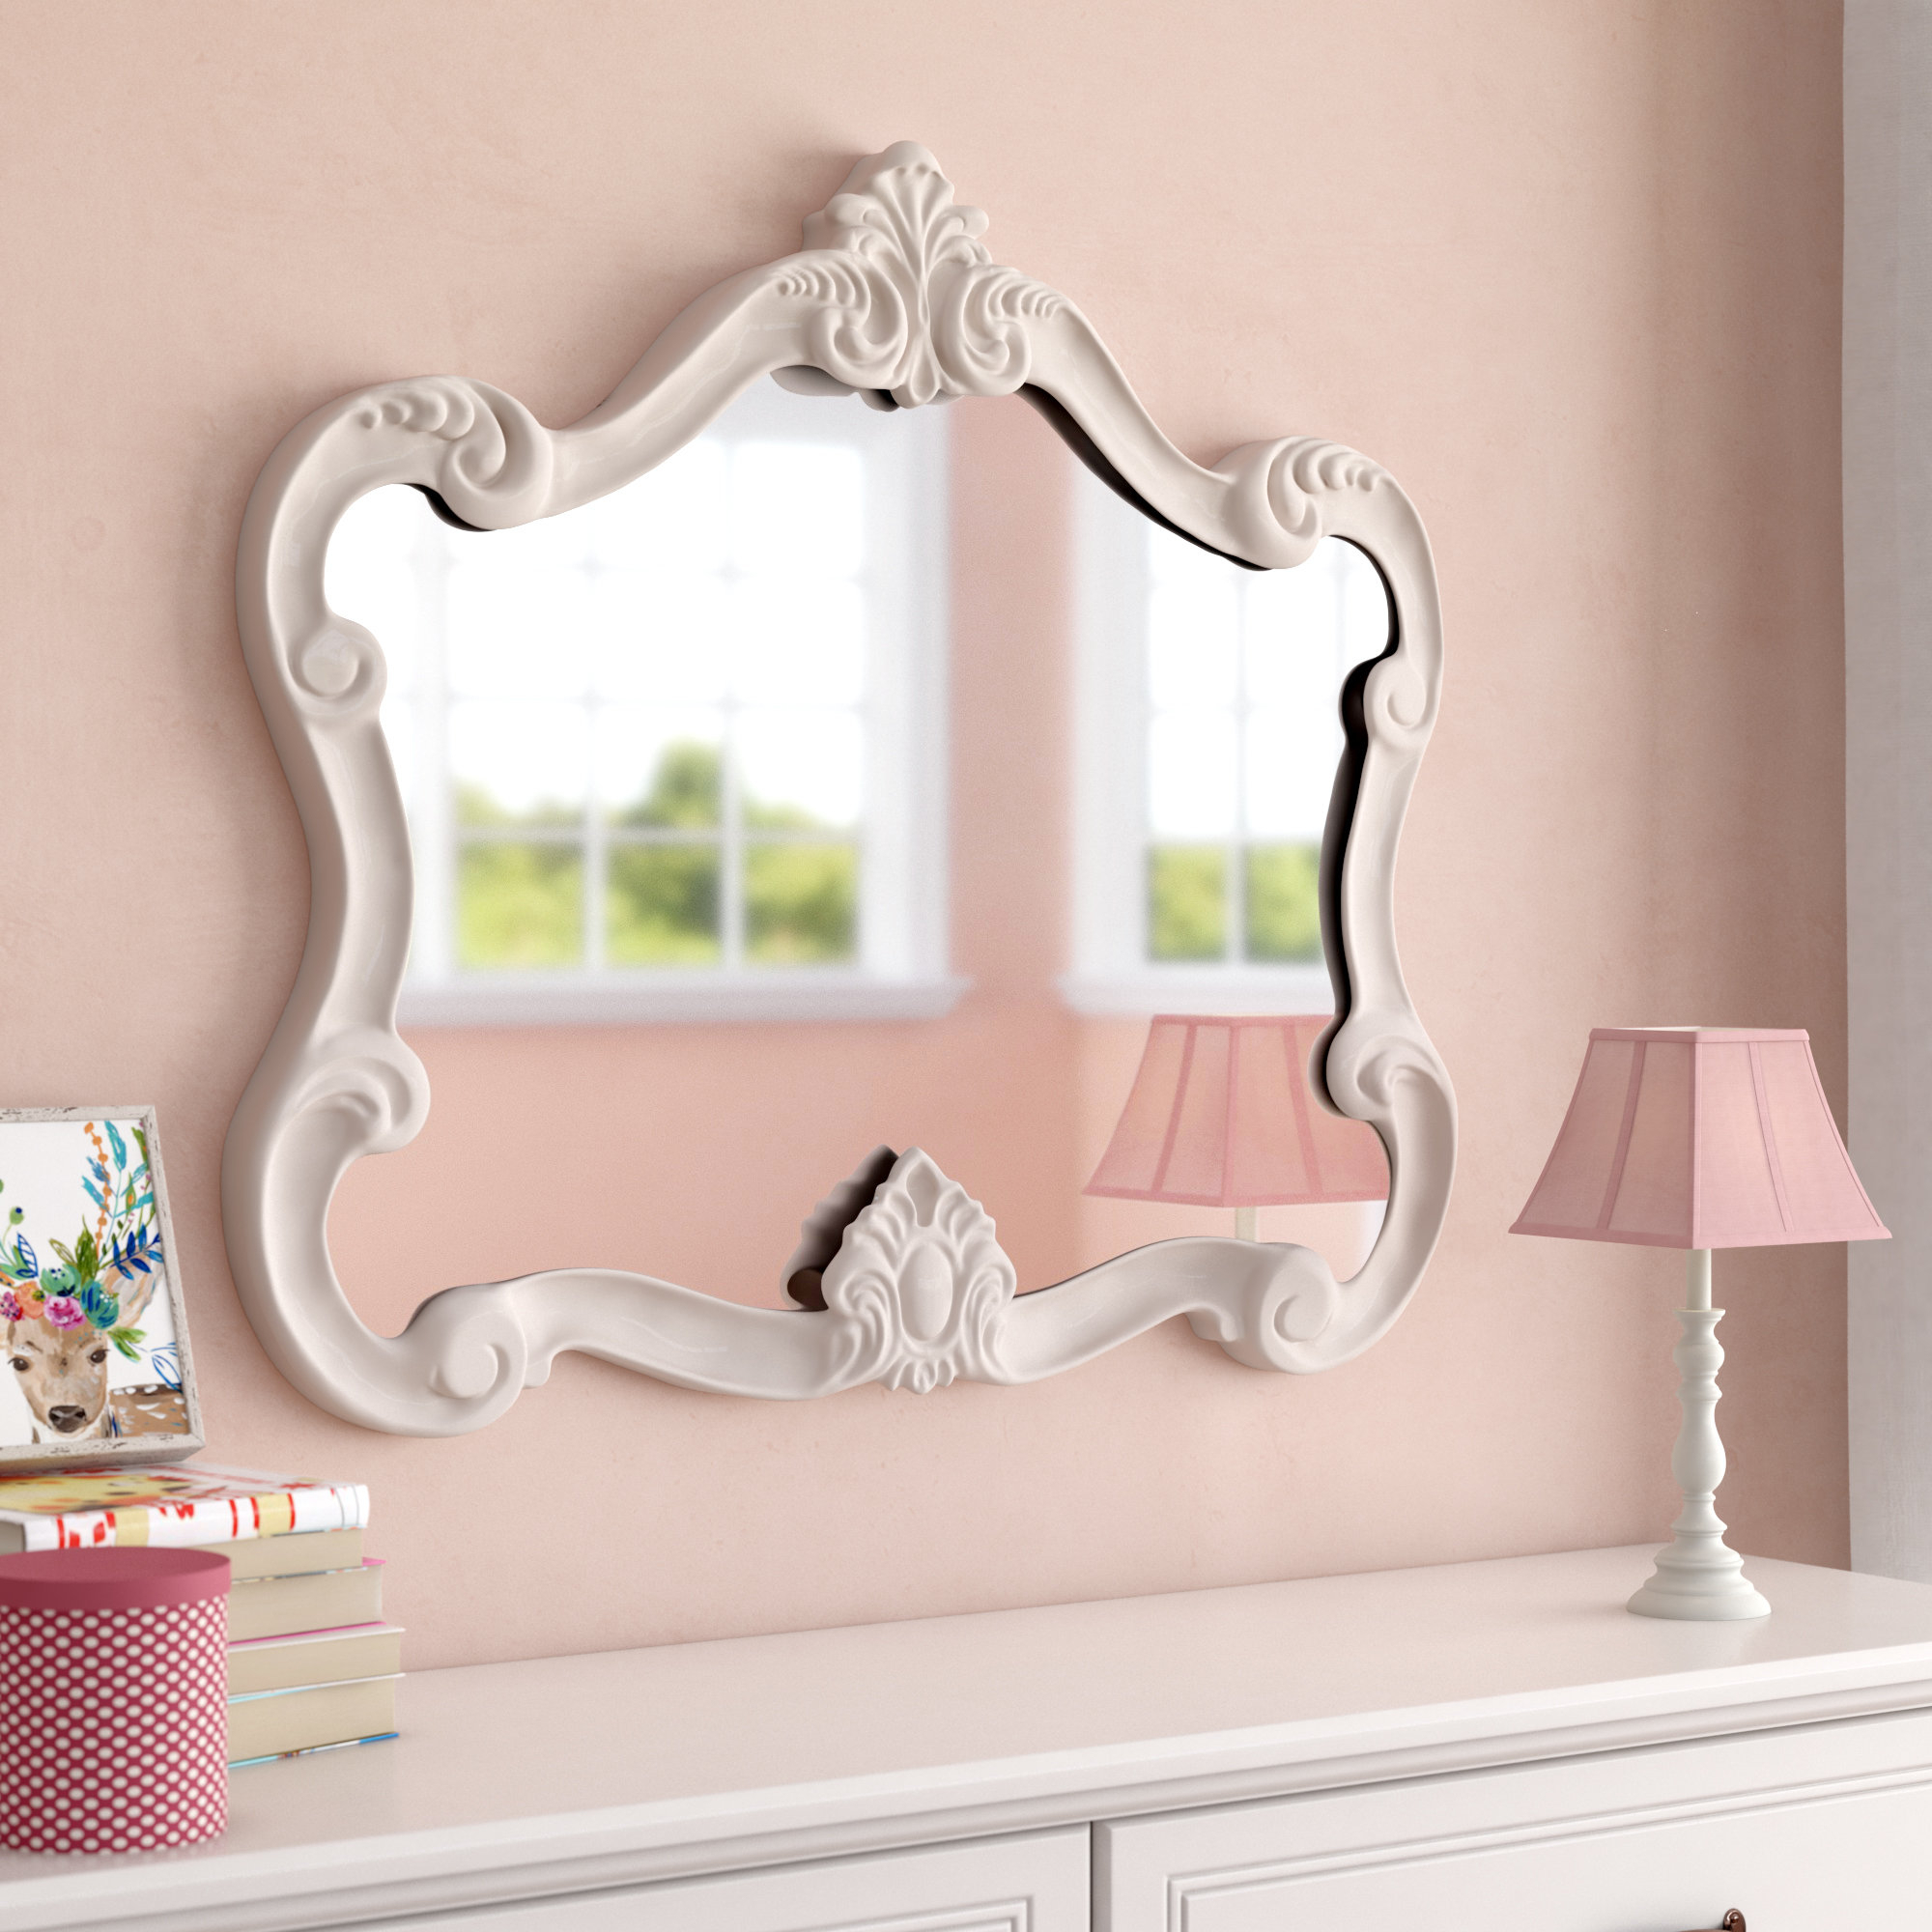 Gingerich Resin Modern & Contemporary Accent Mirror Inside Guidinha Modern & Contemporary Accent Mirrors (View 9 of 30)